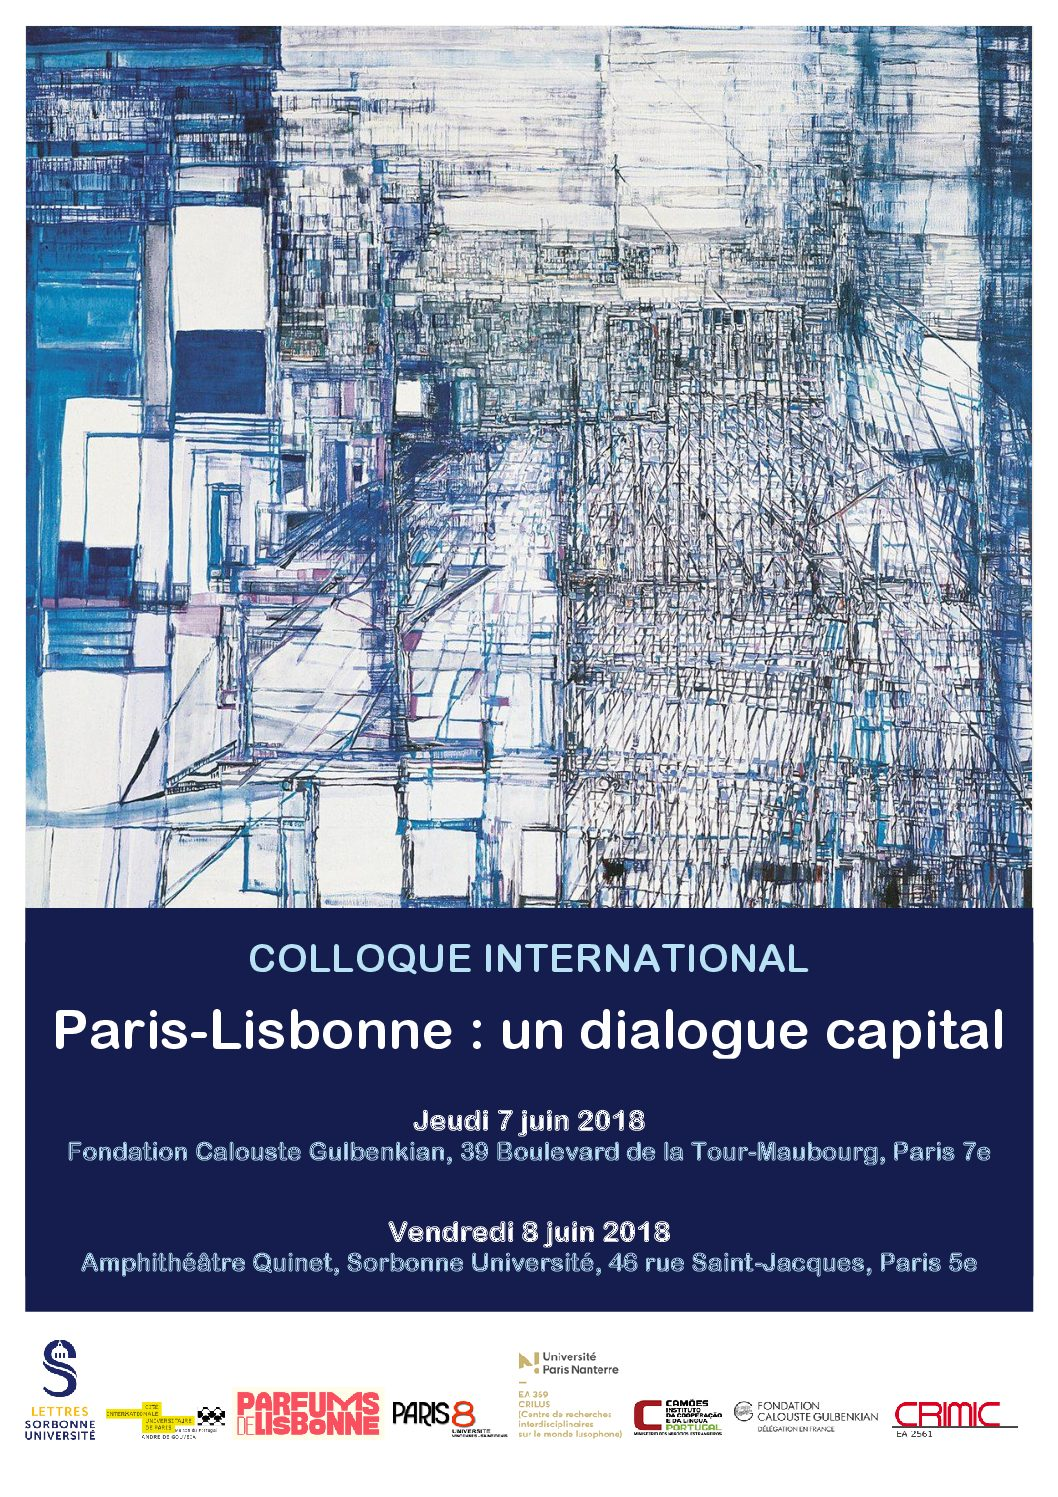 Paris-Lisbonne, un dialogue capital